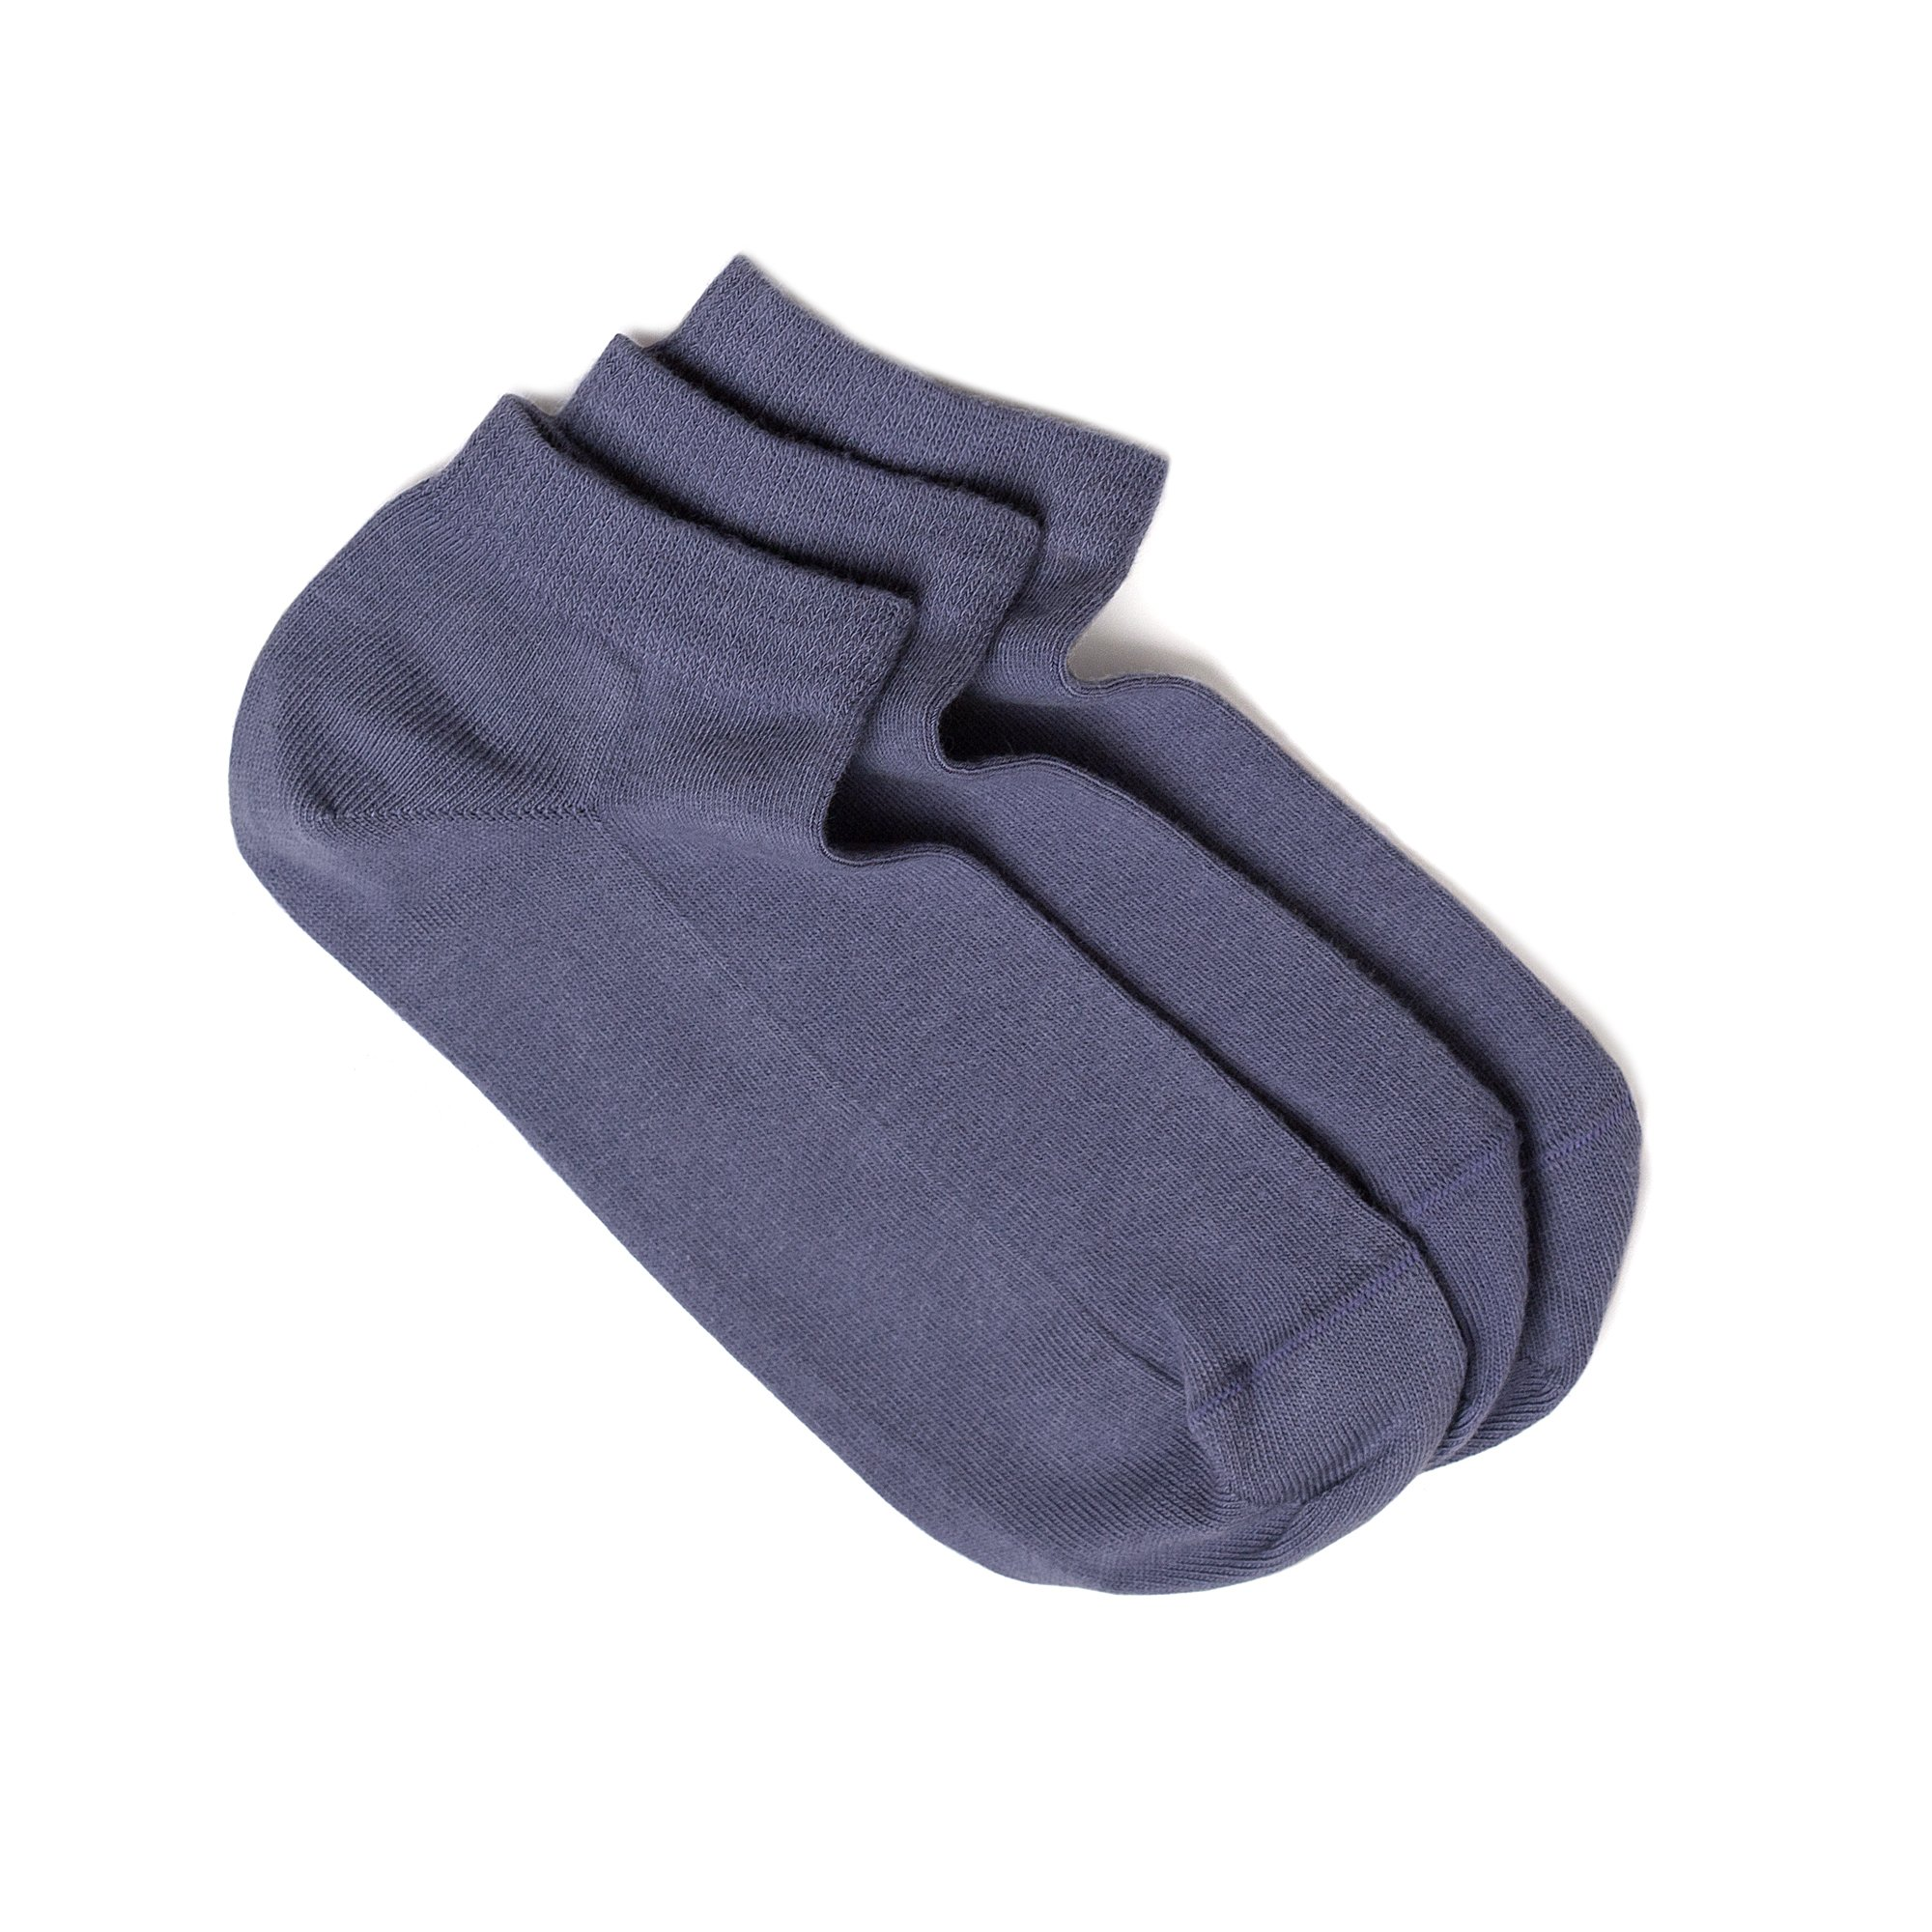 Men's Low Cut Socks, 3 Pairs Pack. Seamless Toe, Fine Combed Cotton, Reinforced Sole